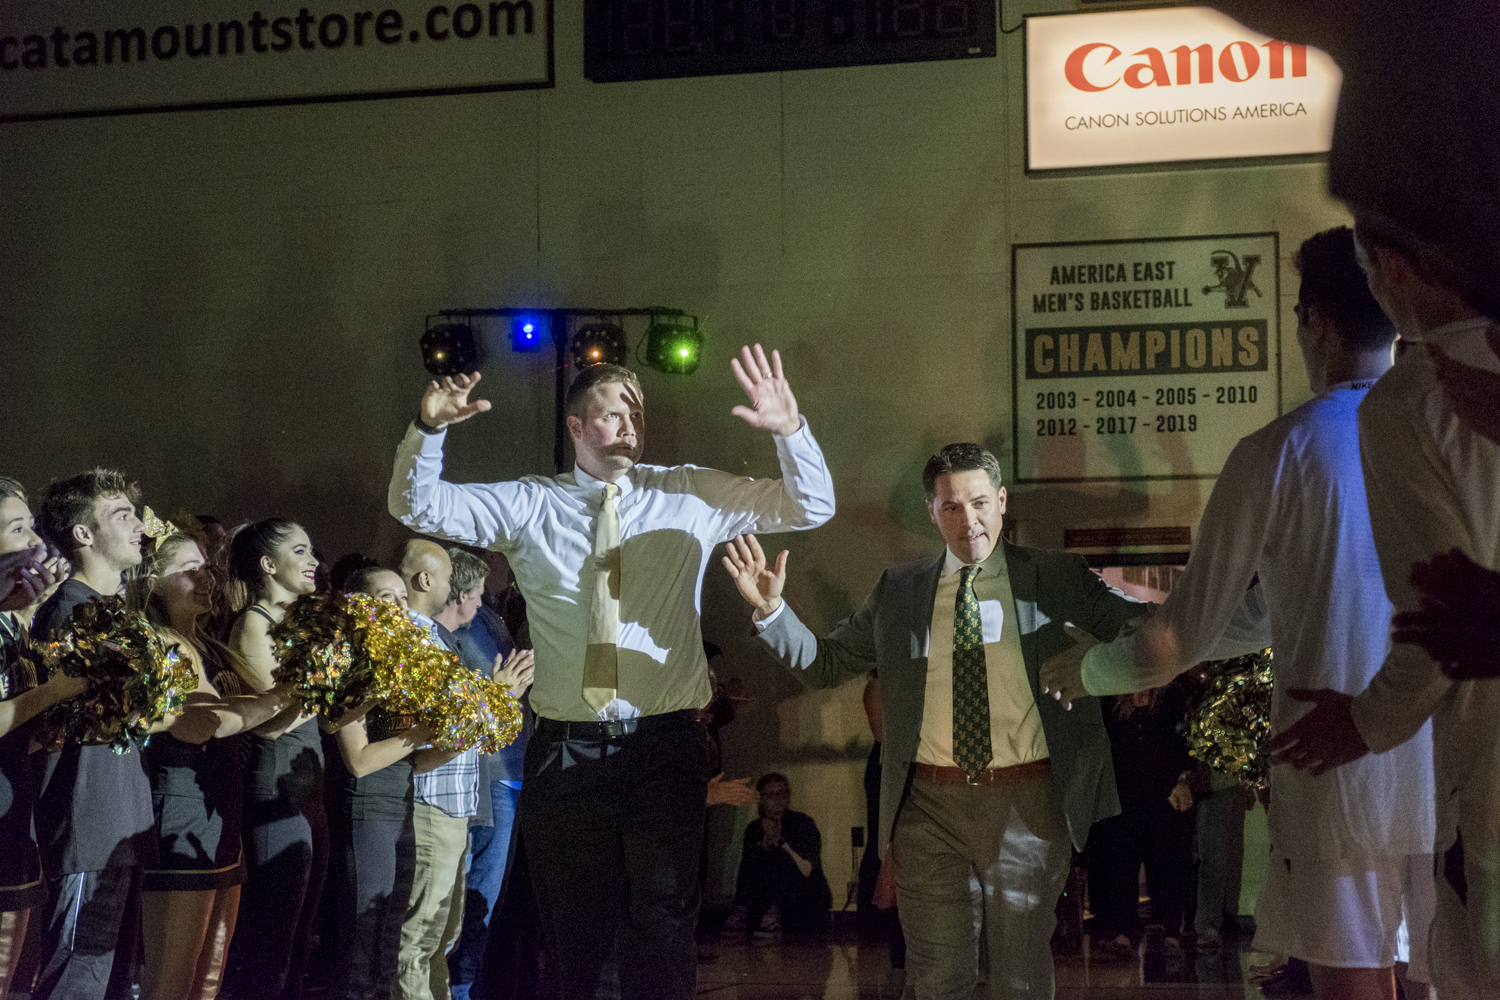 Coppenrath (Left) and Sorrentine (Right) walk into Patrick Gym to cheering and applause. In addition to having their jerseys retired, the two former Catamounts were inducted into the UVM Hall of Fame in 2015.